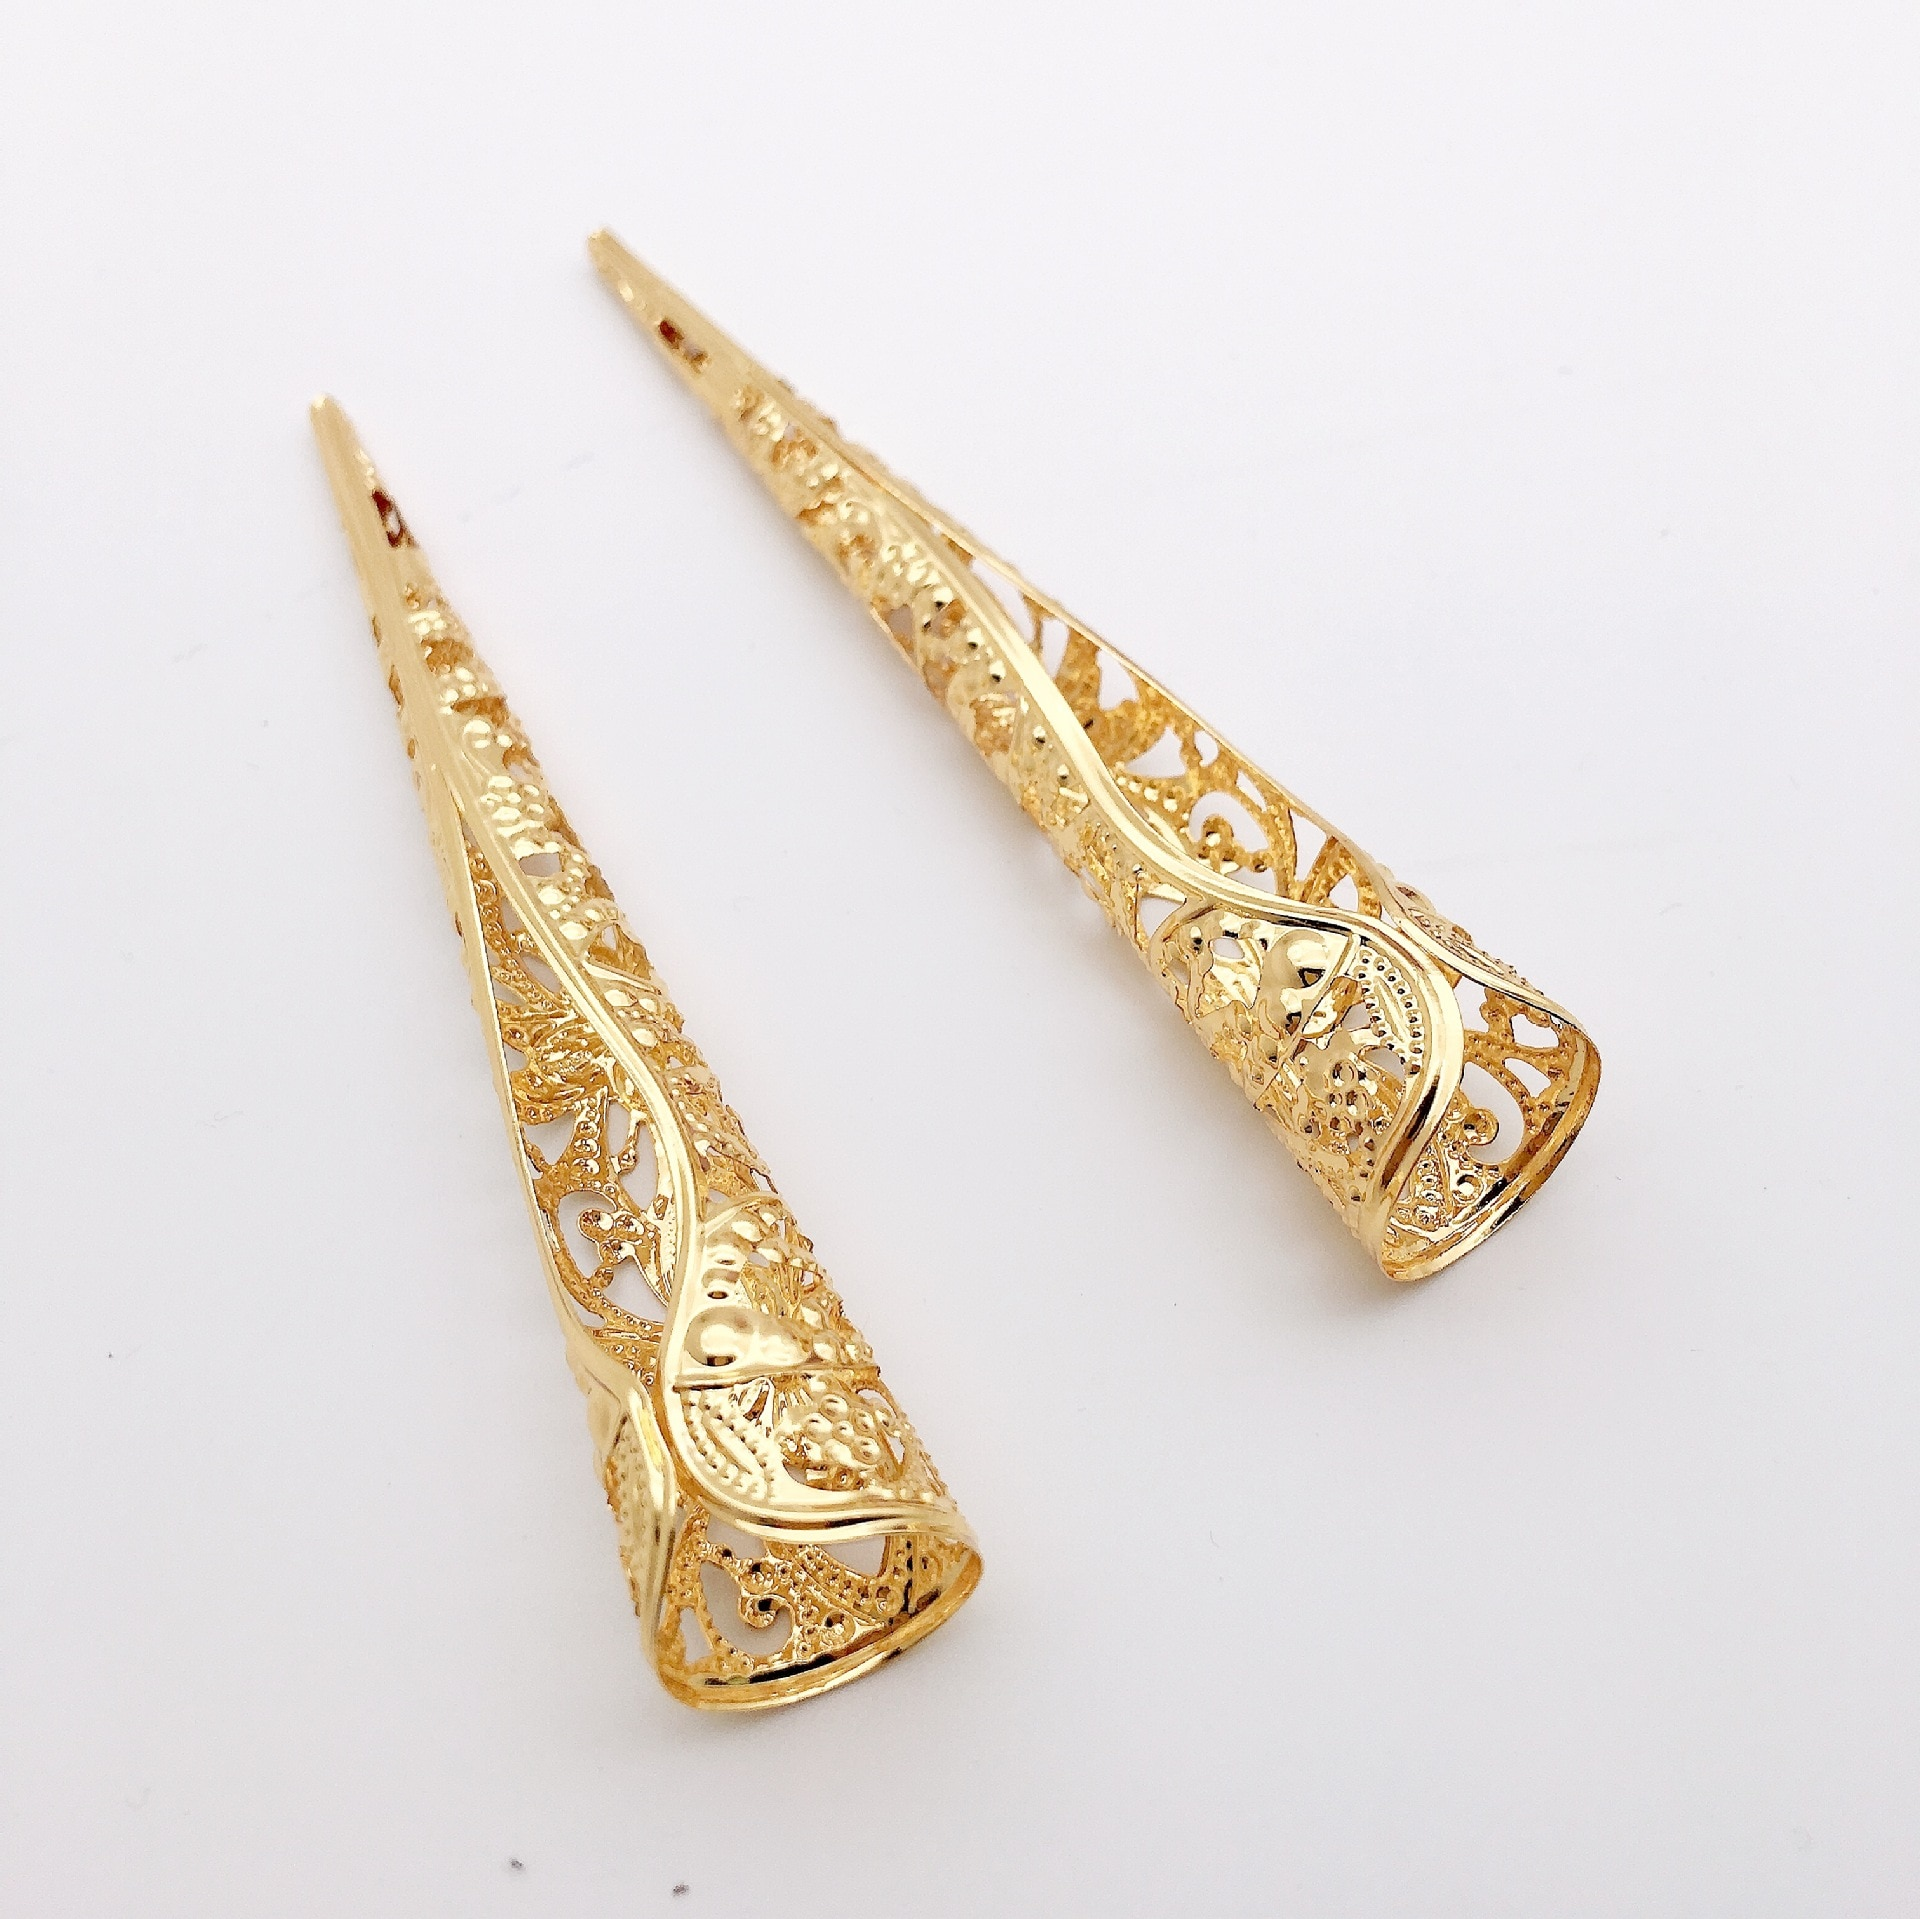 5Pcs/set Fashion Chinese Ancient Long Nail Ring Fingernails Joint Knuckle Finger Ring Cosplay Fancy Dress Jewelry